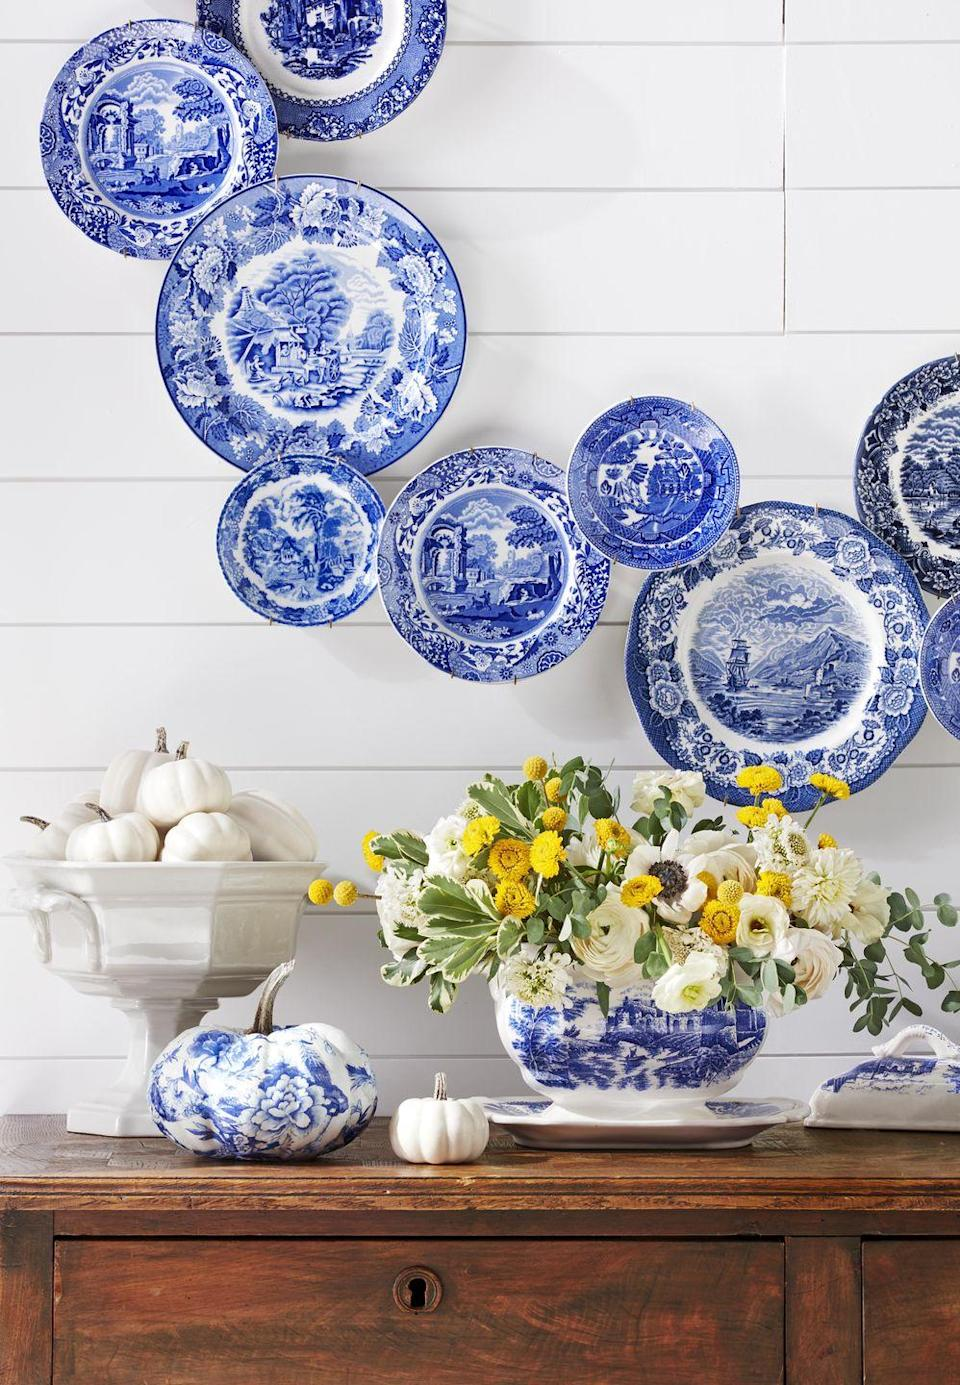 """<p>A vintage blue-and-white transferware tureen stuffed full of white and yellow flowers, with hints of greenery, looks great on buffet or as a Thanksgiving table centerpiece. Bonus: Decoupage a white pumpkin with blue and white toile wallpaper (you can use color copies, too).</p><p><a class=""""link rapid-noclick-resp"""" href=""""https://www.amazon.com/Spode-783931401145-Italian-Tureen-Ladle/dp/B001D5385A/ref=sr_1_9?dchild=1&keywords=SOUP+TUREEN&qid=1594400885&sr=8-9&tag=syn-yahoo-20&ascsubtag=%5Bartid%7C10050.g.2130%5Bsrc%7Cyahoo-us"""" rel=""""nofollow noopener"""" target=""""_blank"""" data-ylk=""""slk:SHOP SOUP TUREENS"""">SHOP SOUP TUREENS</a></p>"""